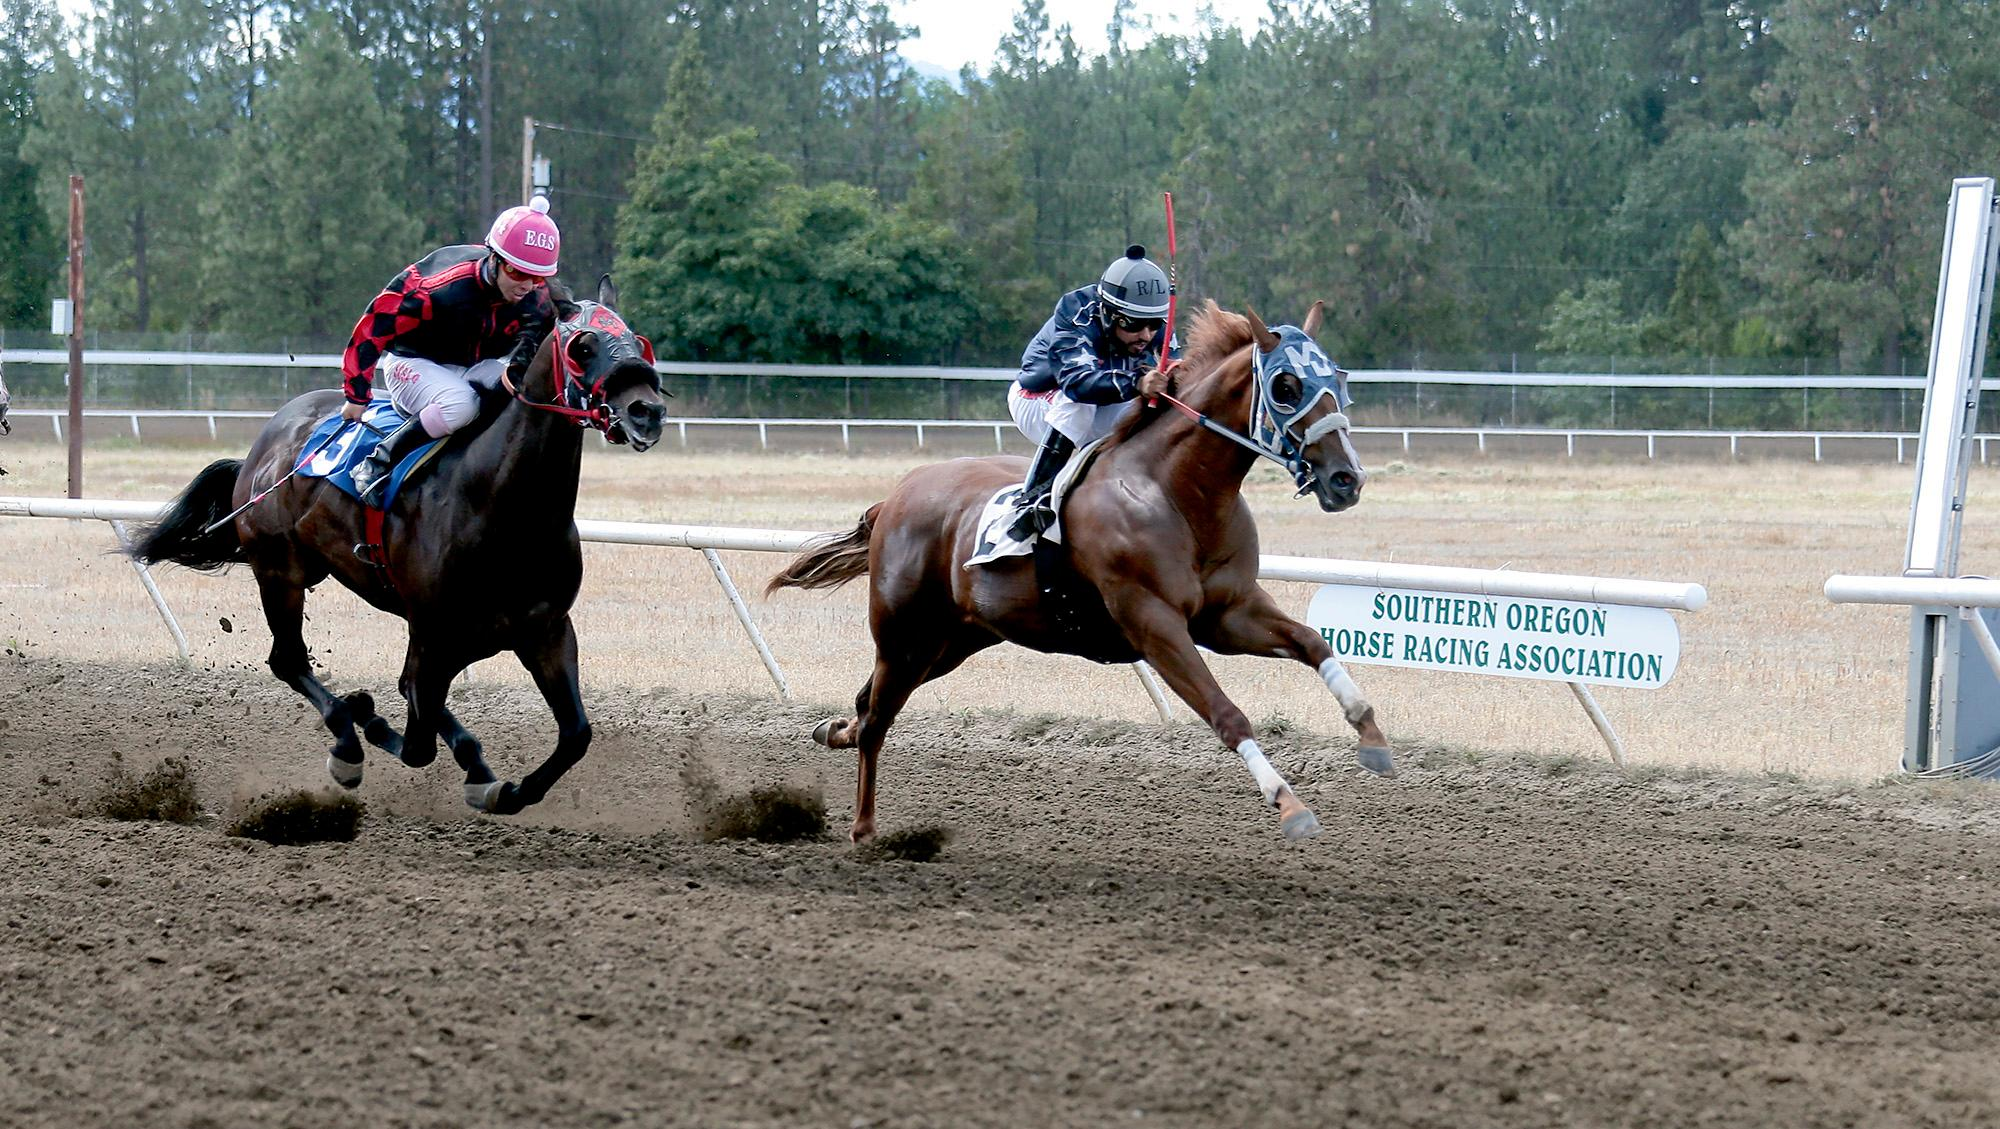 Larry Stauth Jr./For the Mail TribuneHarem Bar Cartel, with jockey Ruben Lozano, races past Arizona Favorite in the fifth race at Grants Pass Downs on Sunday.